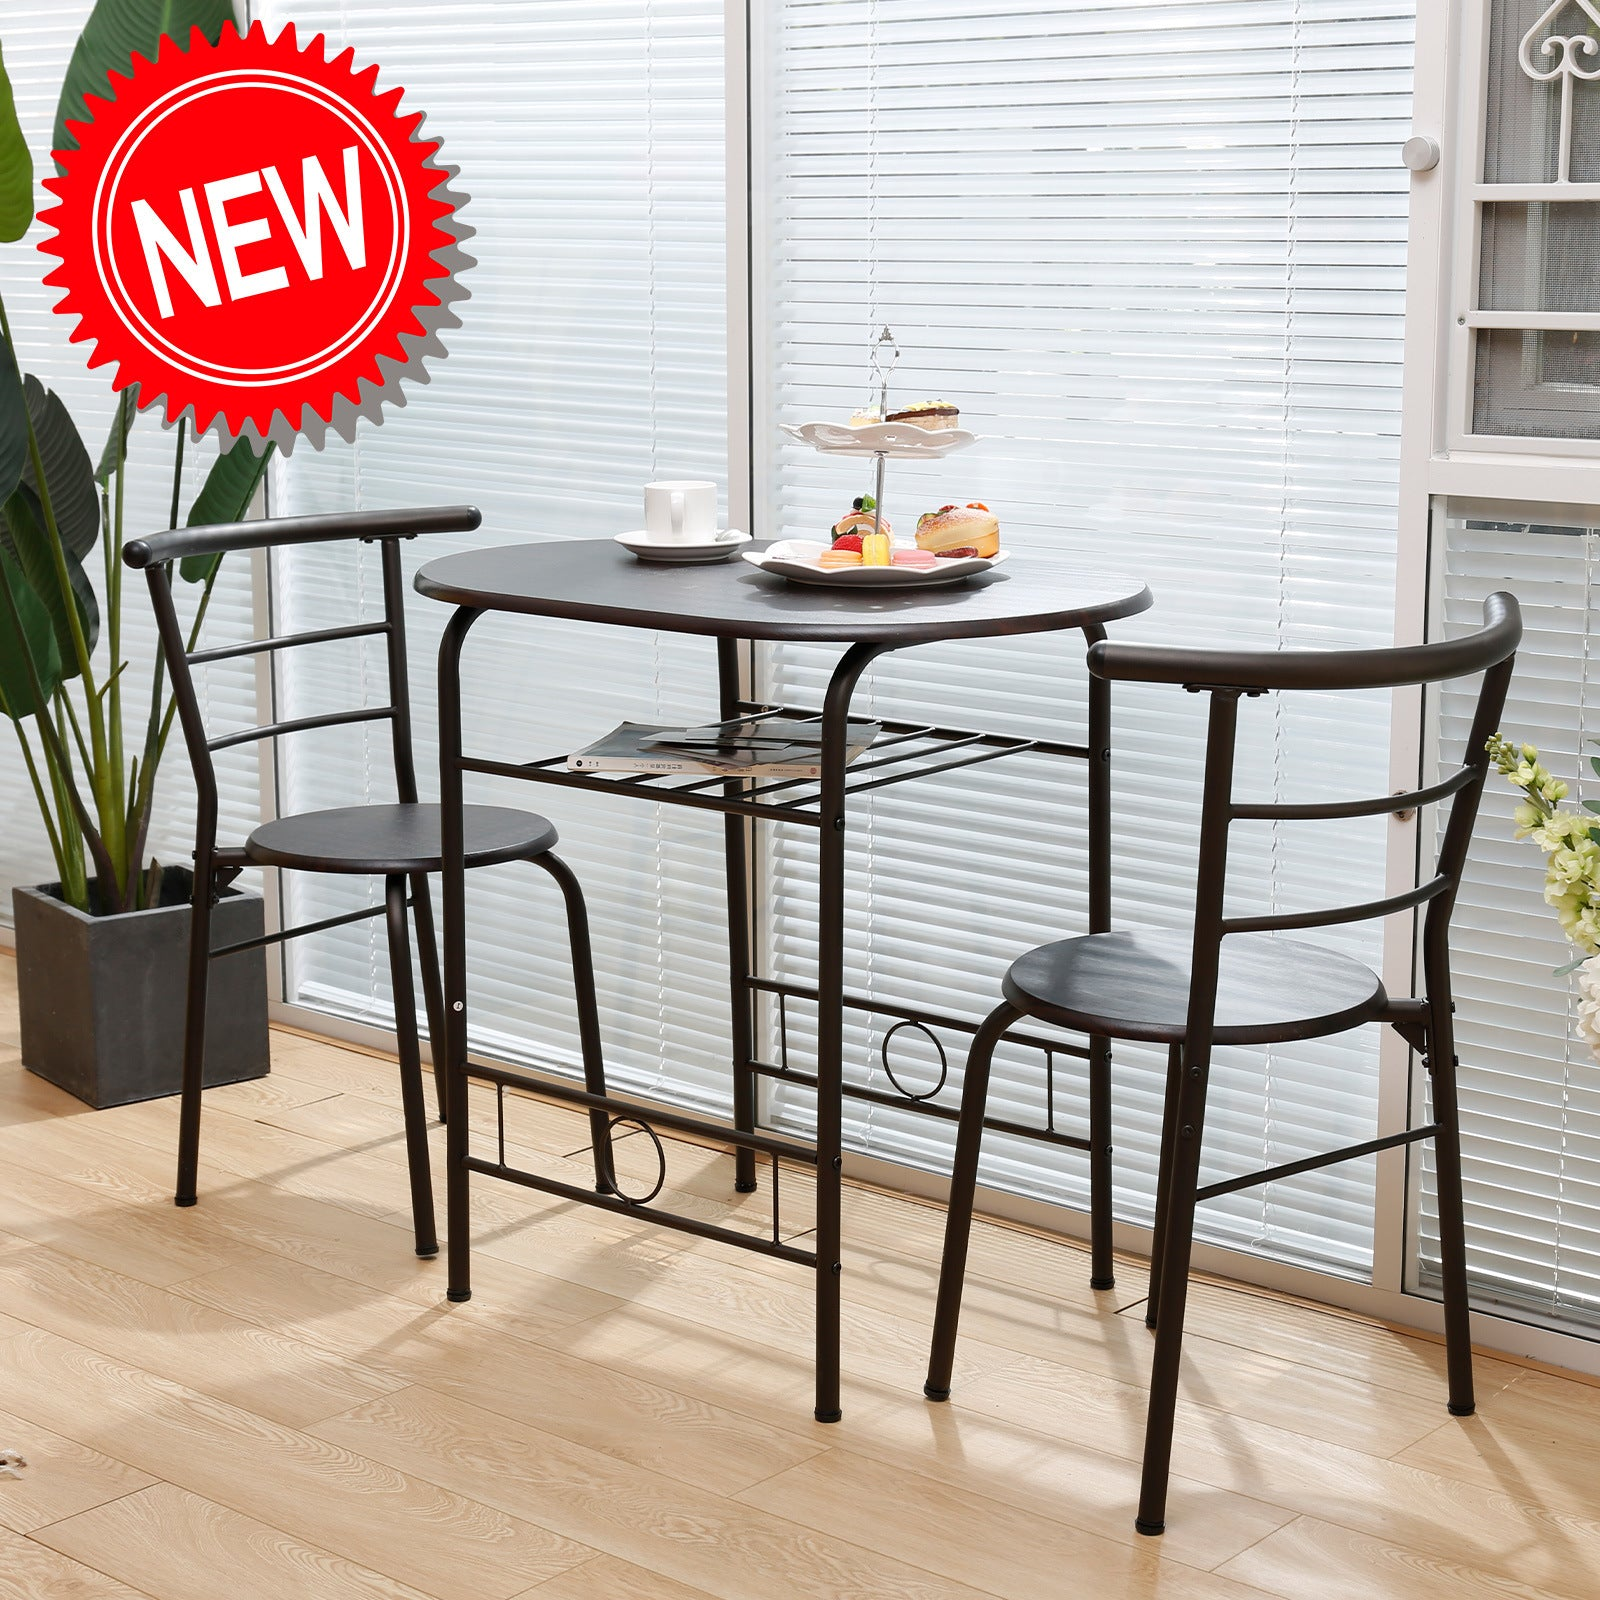 3 Pieces Kitchen Table Set, Couple Dining Round Table Set with Metal Frame and Shelf Storage, Home Breakfast Table, 3 Piece Kitchen Table Set RT